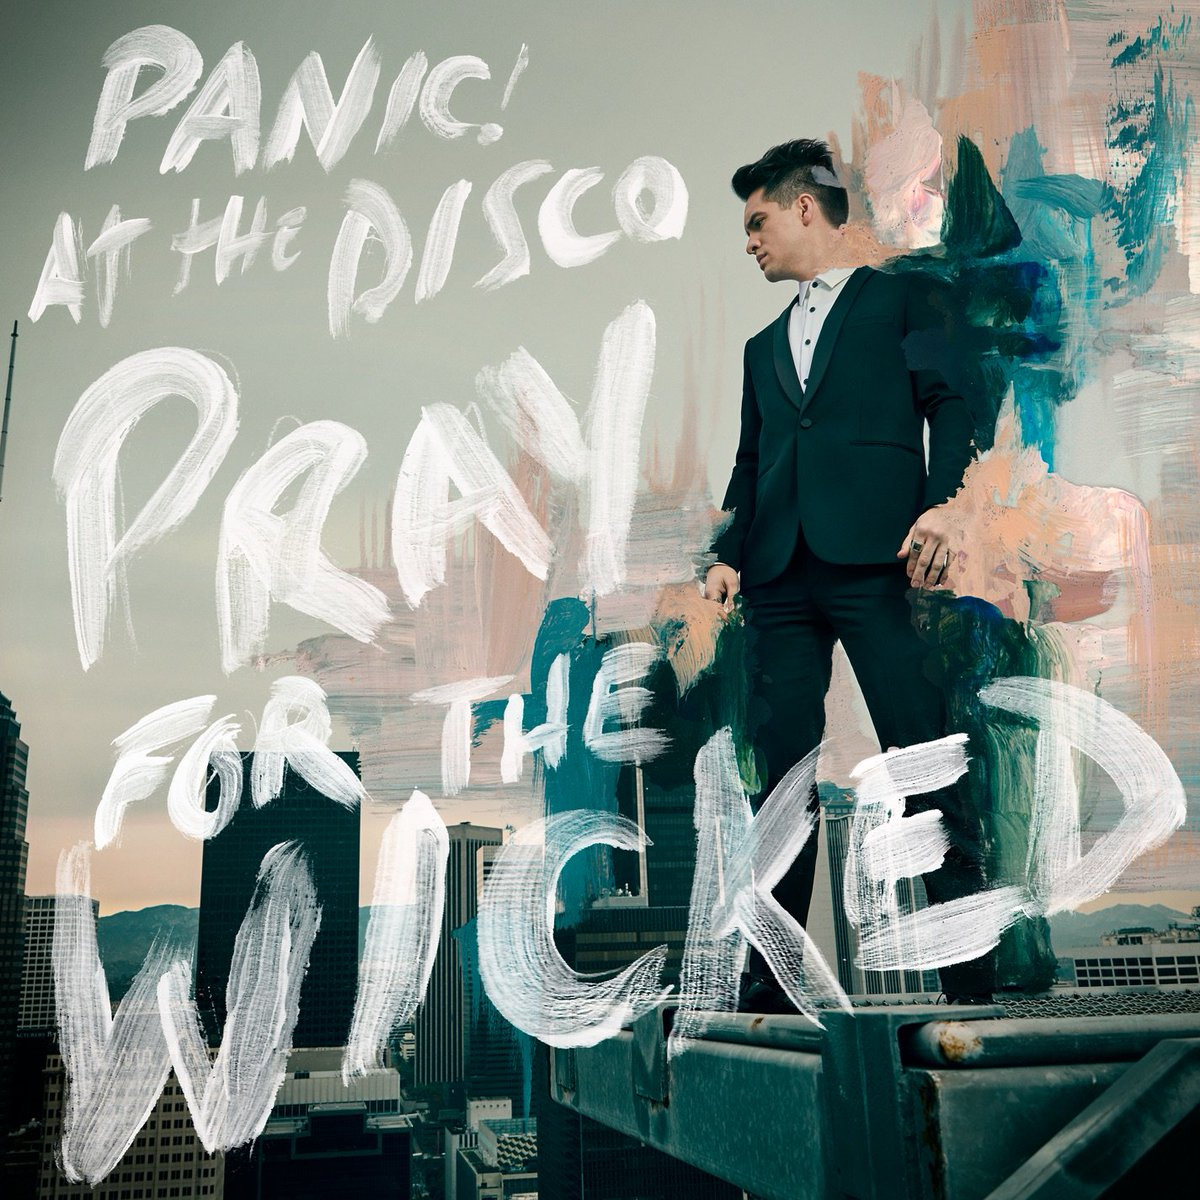 Panic! At The Disco's photo on At The Disco